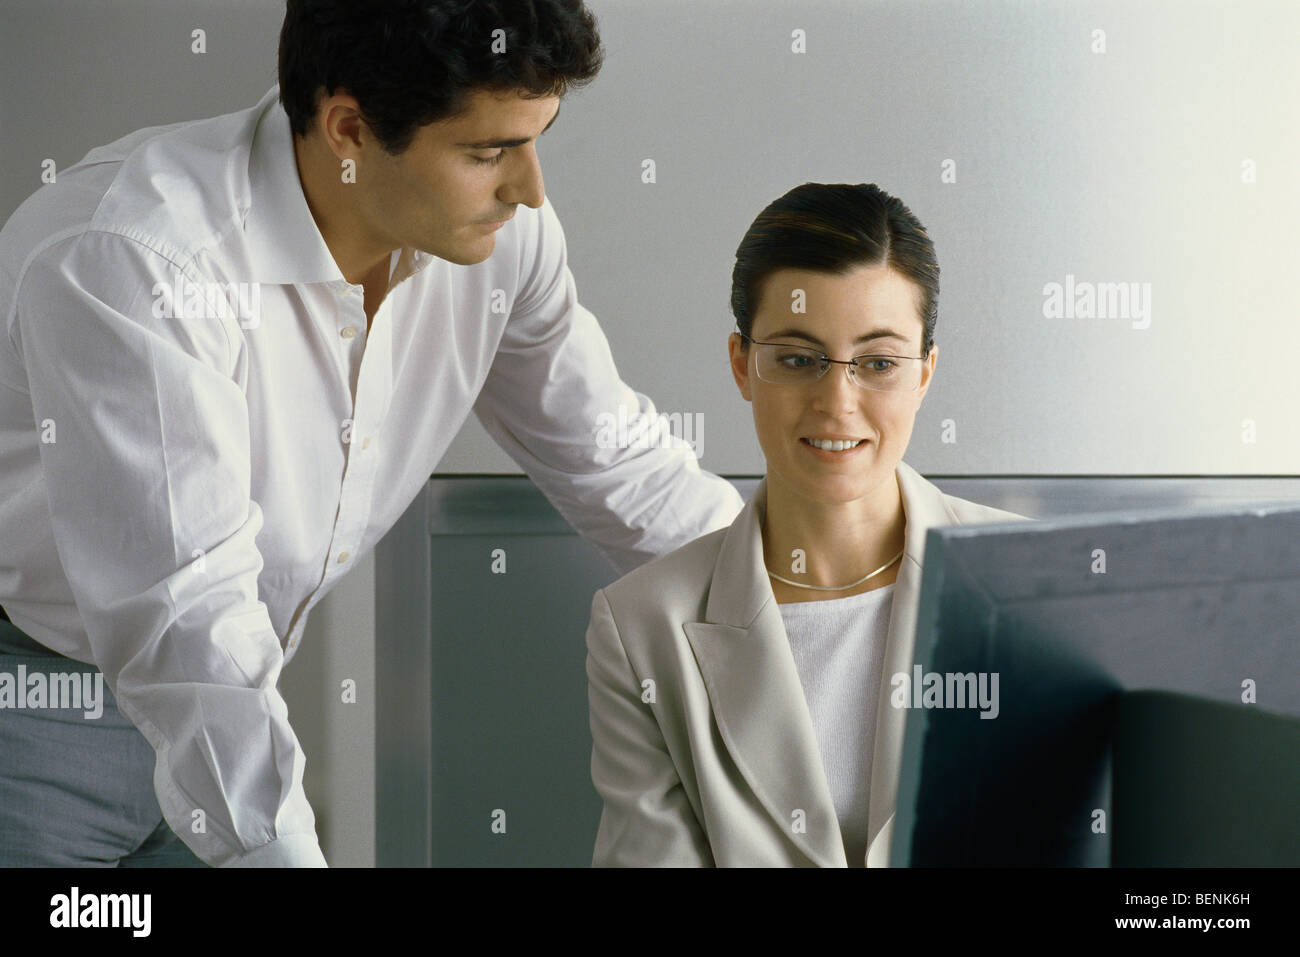 Young professional woman smiling, looking at computer screen while male colleague leans over her shoulder - Stock Image